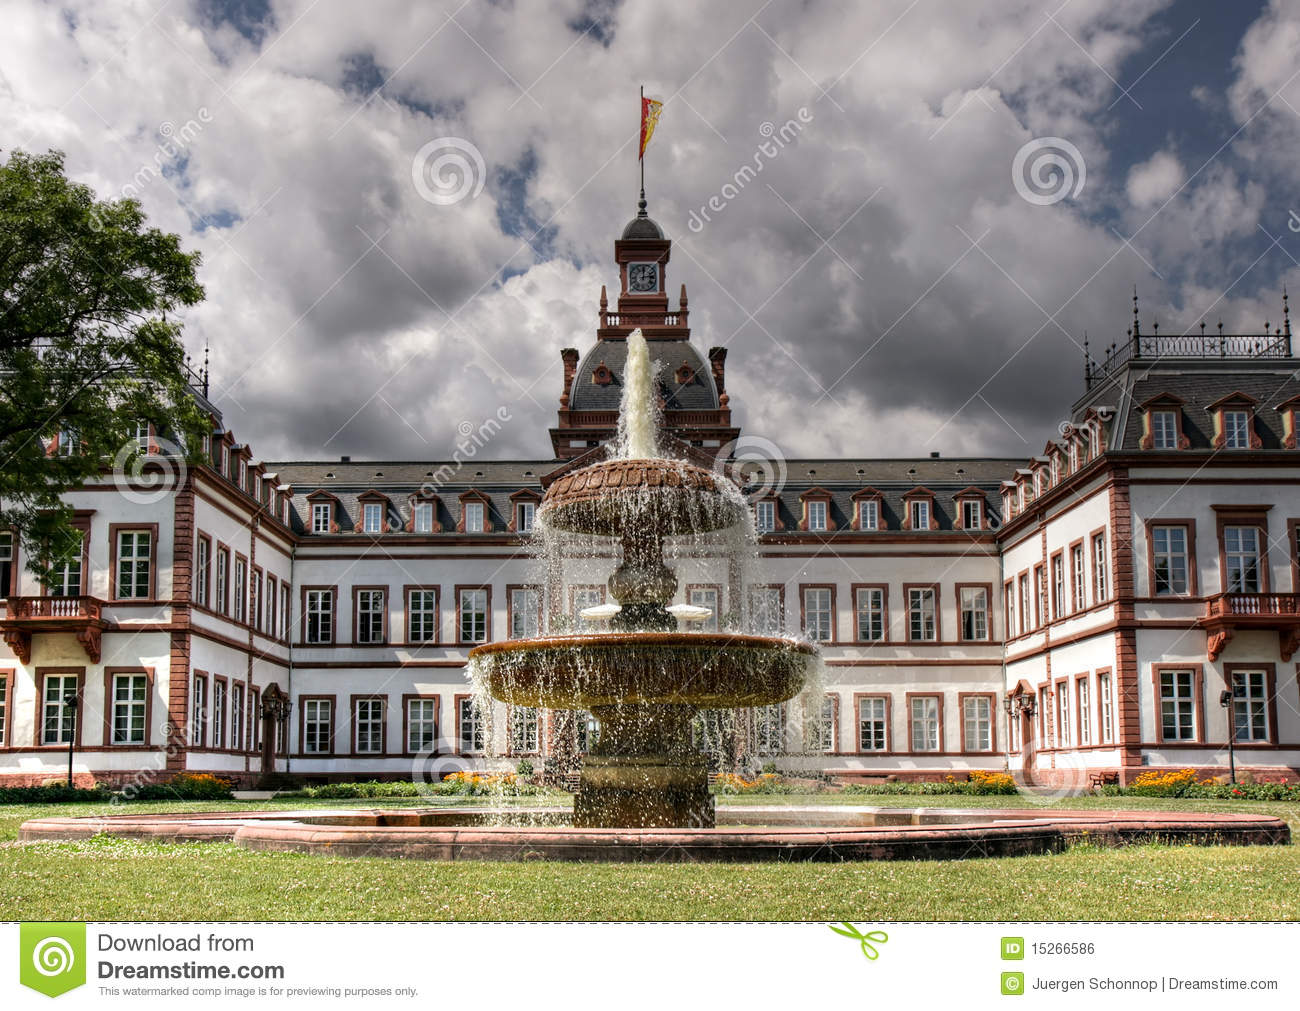 Schloss Philippsruhe The Fairy-Tale Road, 23 best Hanau, Germany images on Pinterest   Germany, Europe and ...